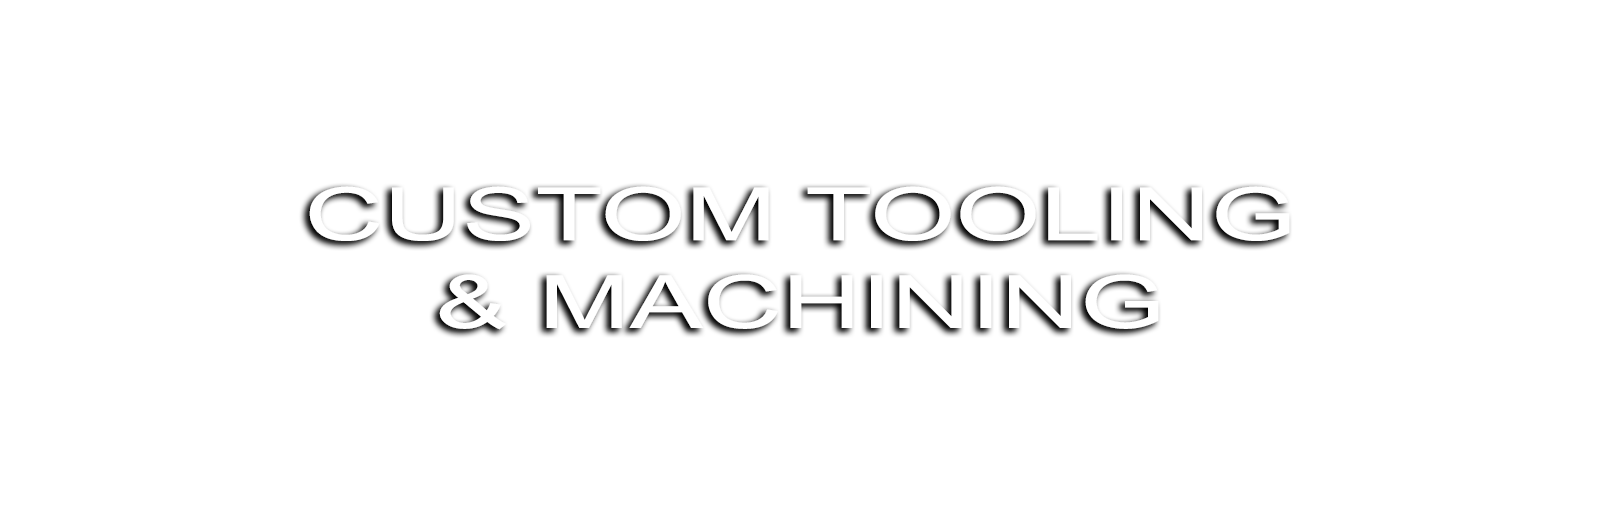 Multivac custom toollng and machining